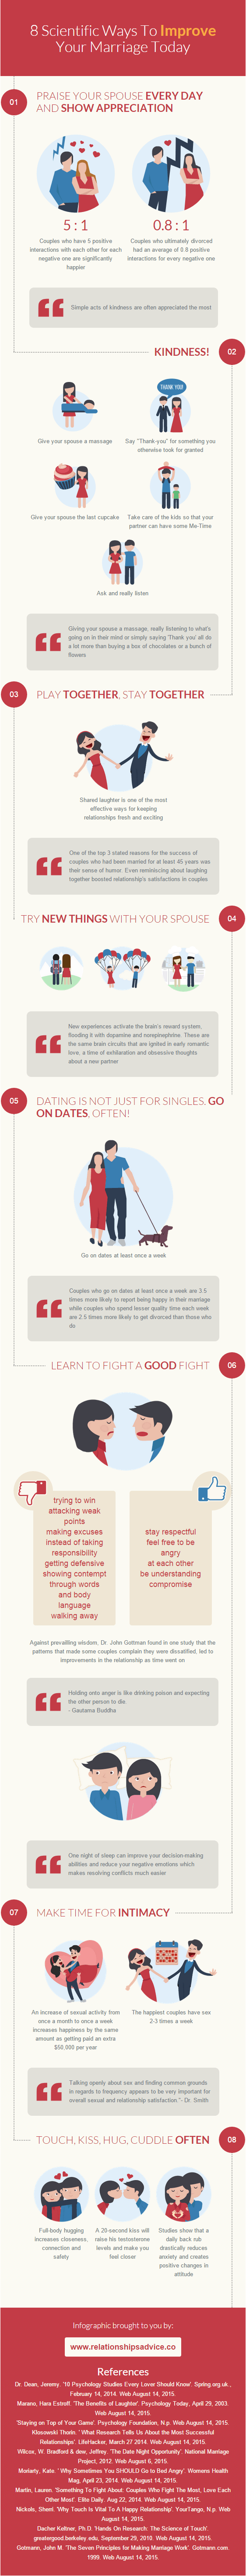 improve-your-marriage-infographic